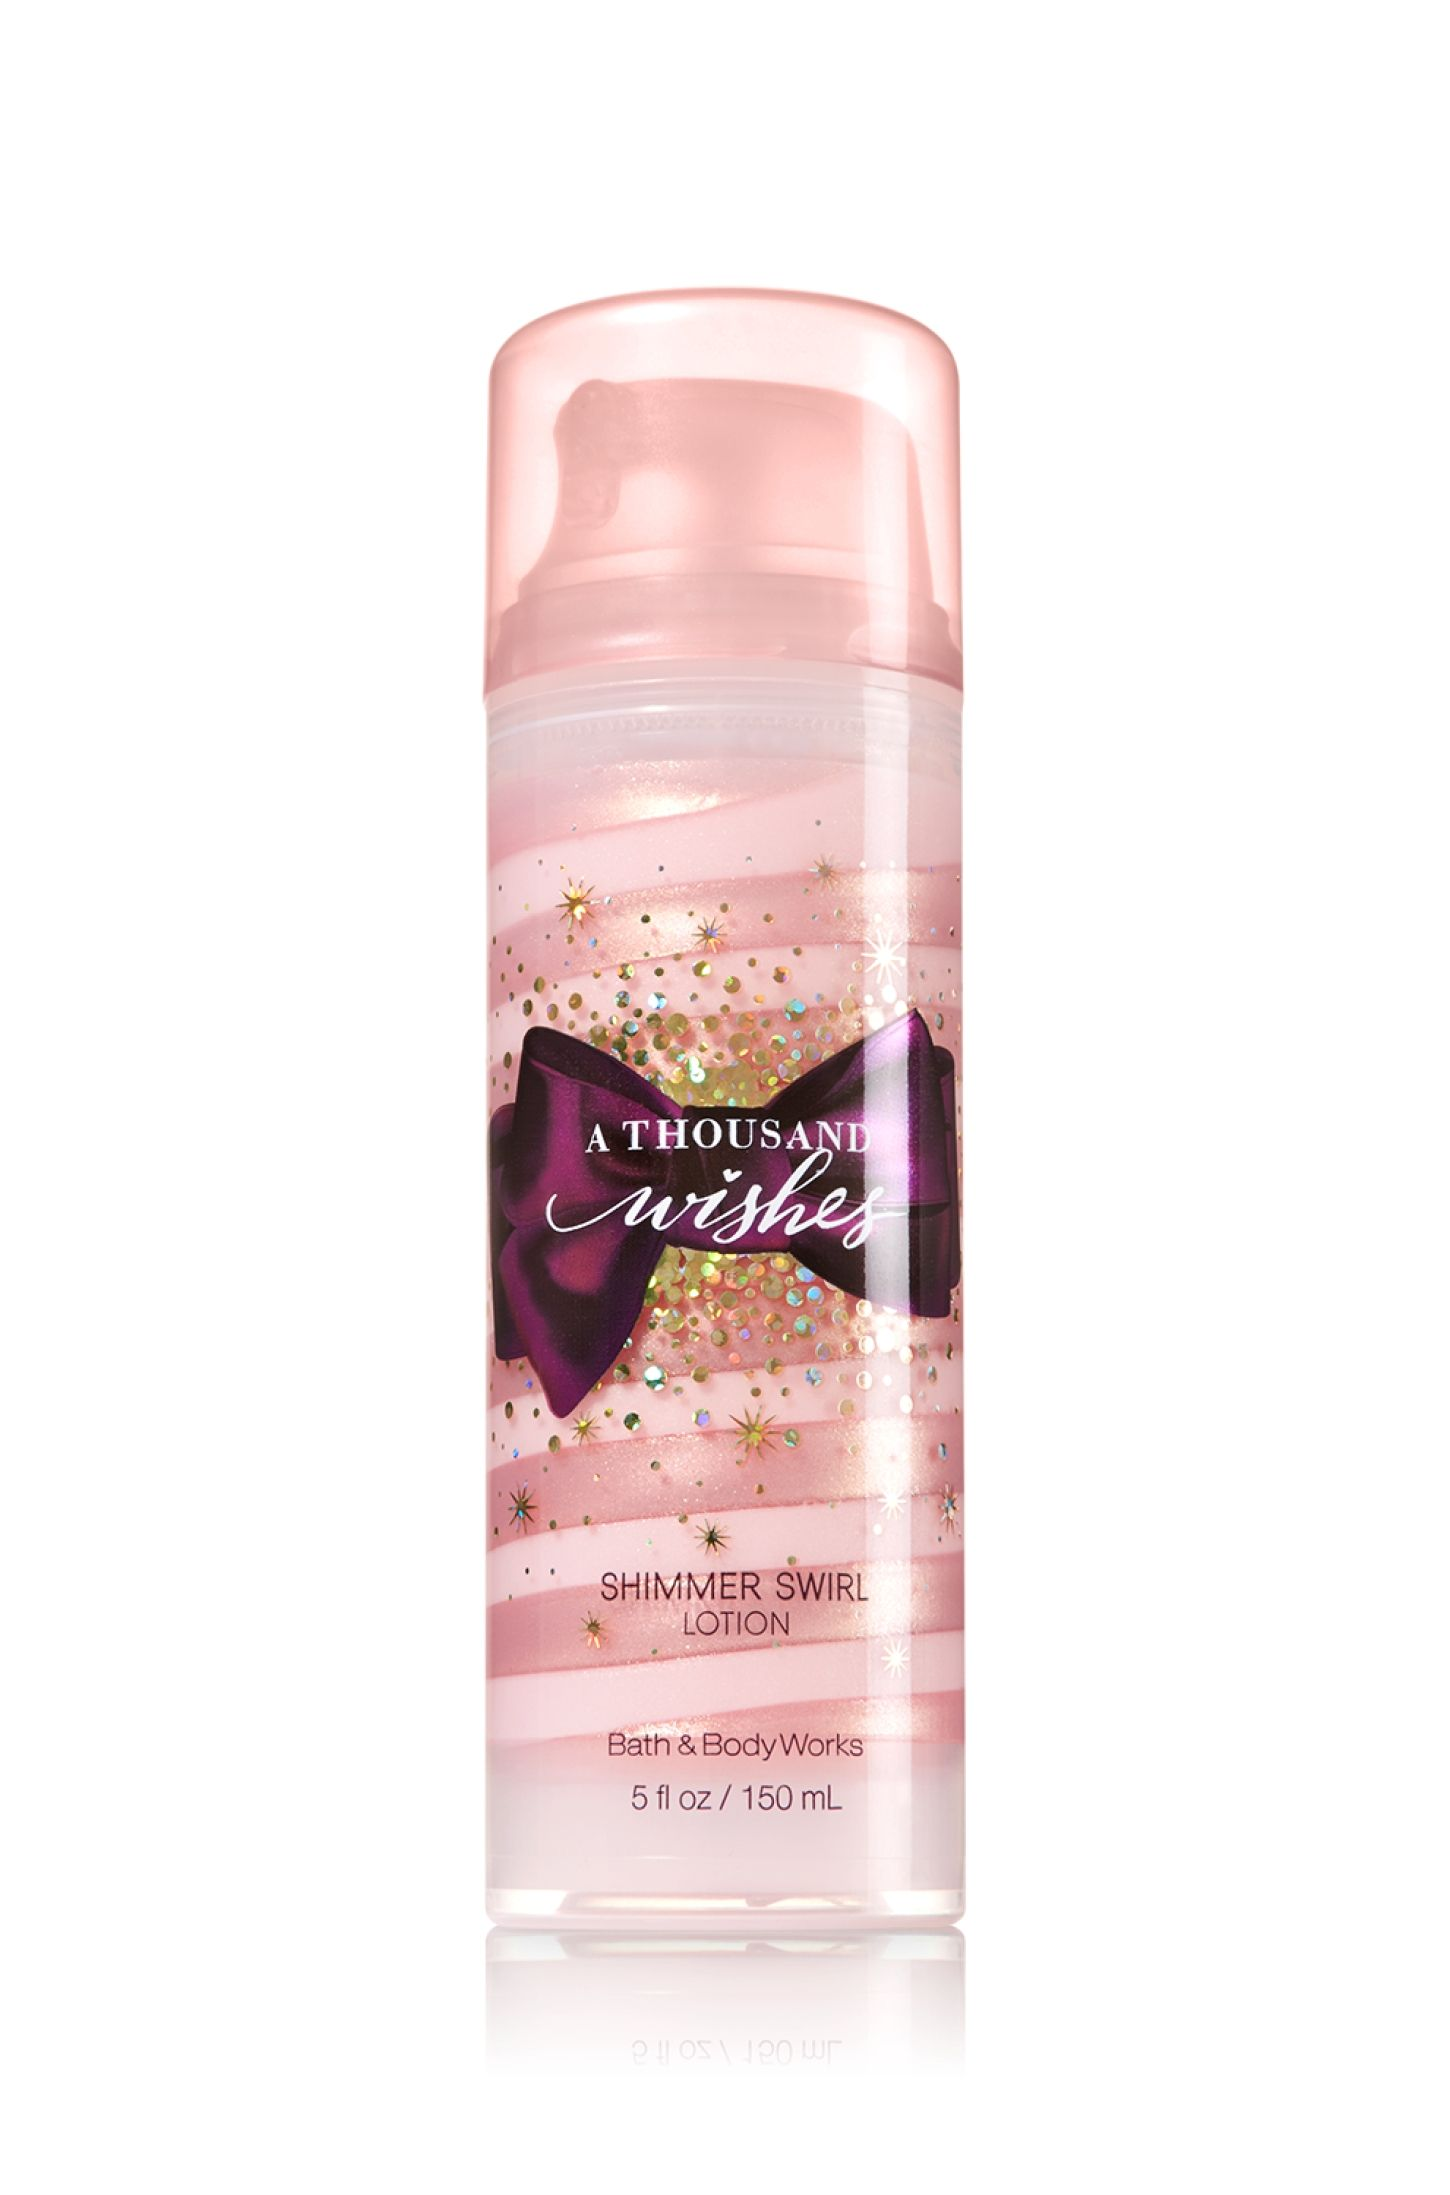 A thousand wishes shimmer swirl lotion signature